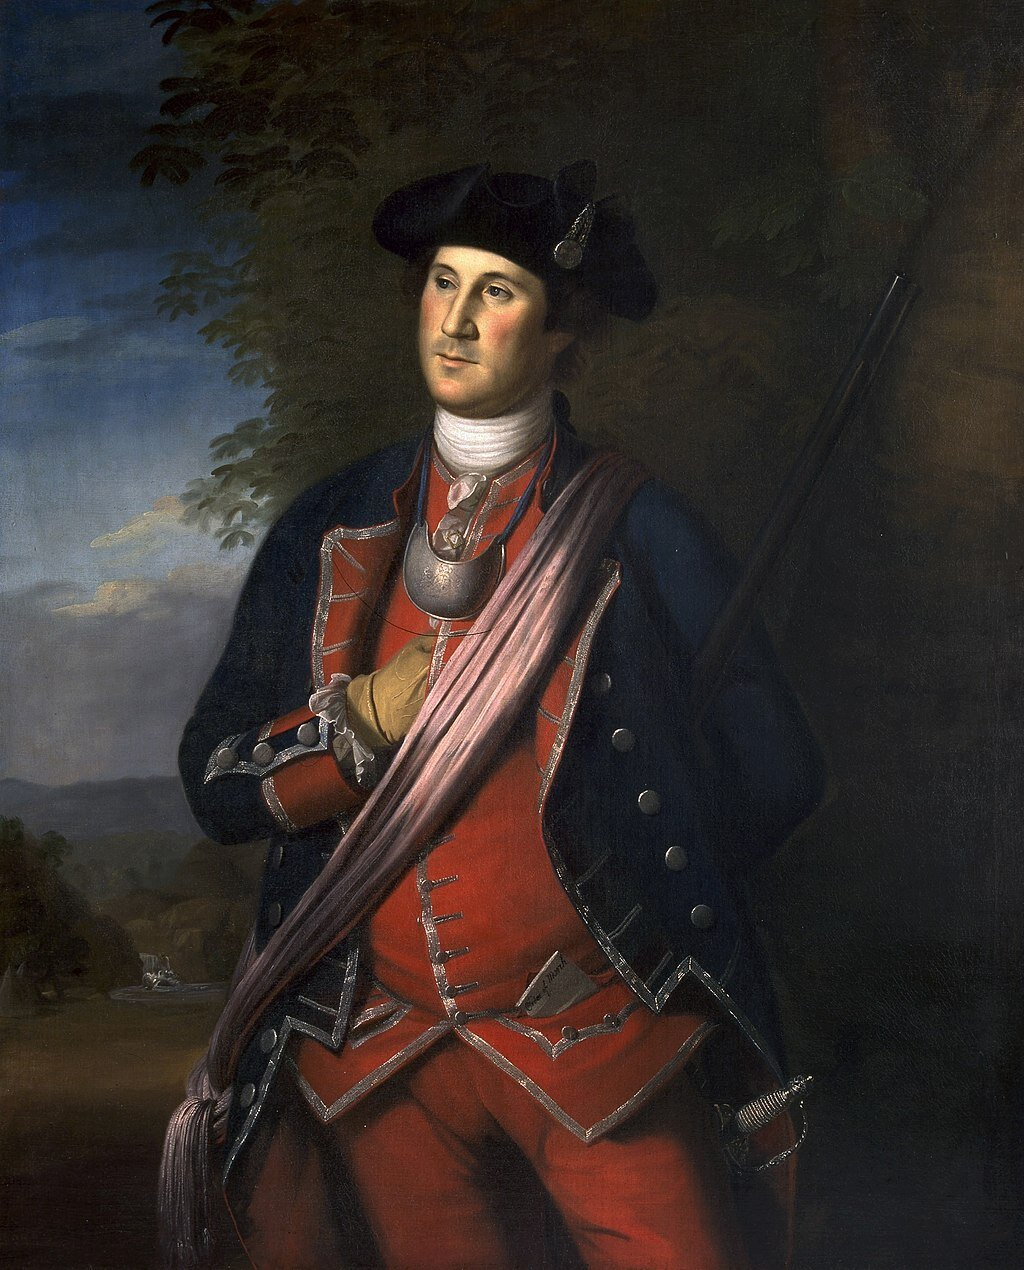 A depiction of George Washington during the French and Indian War. By Charles Willson Peale.